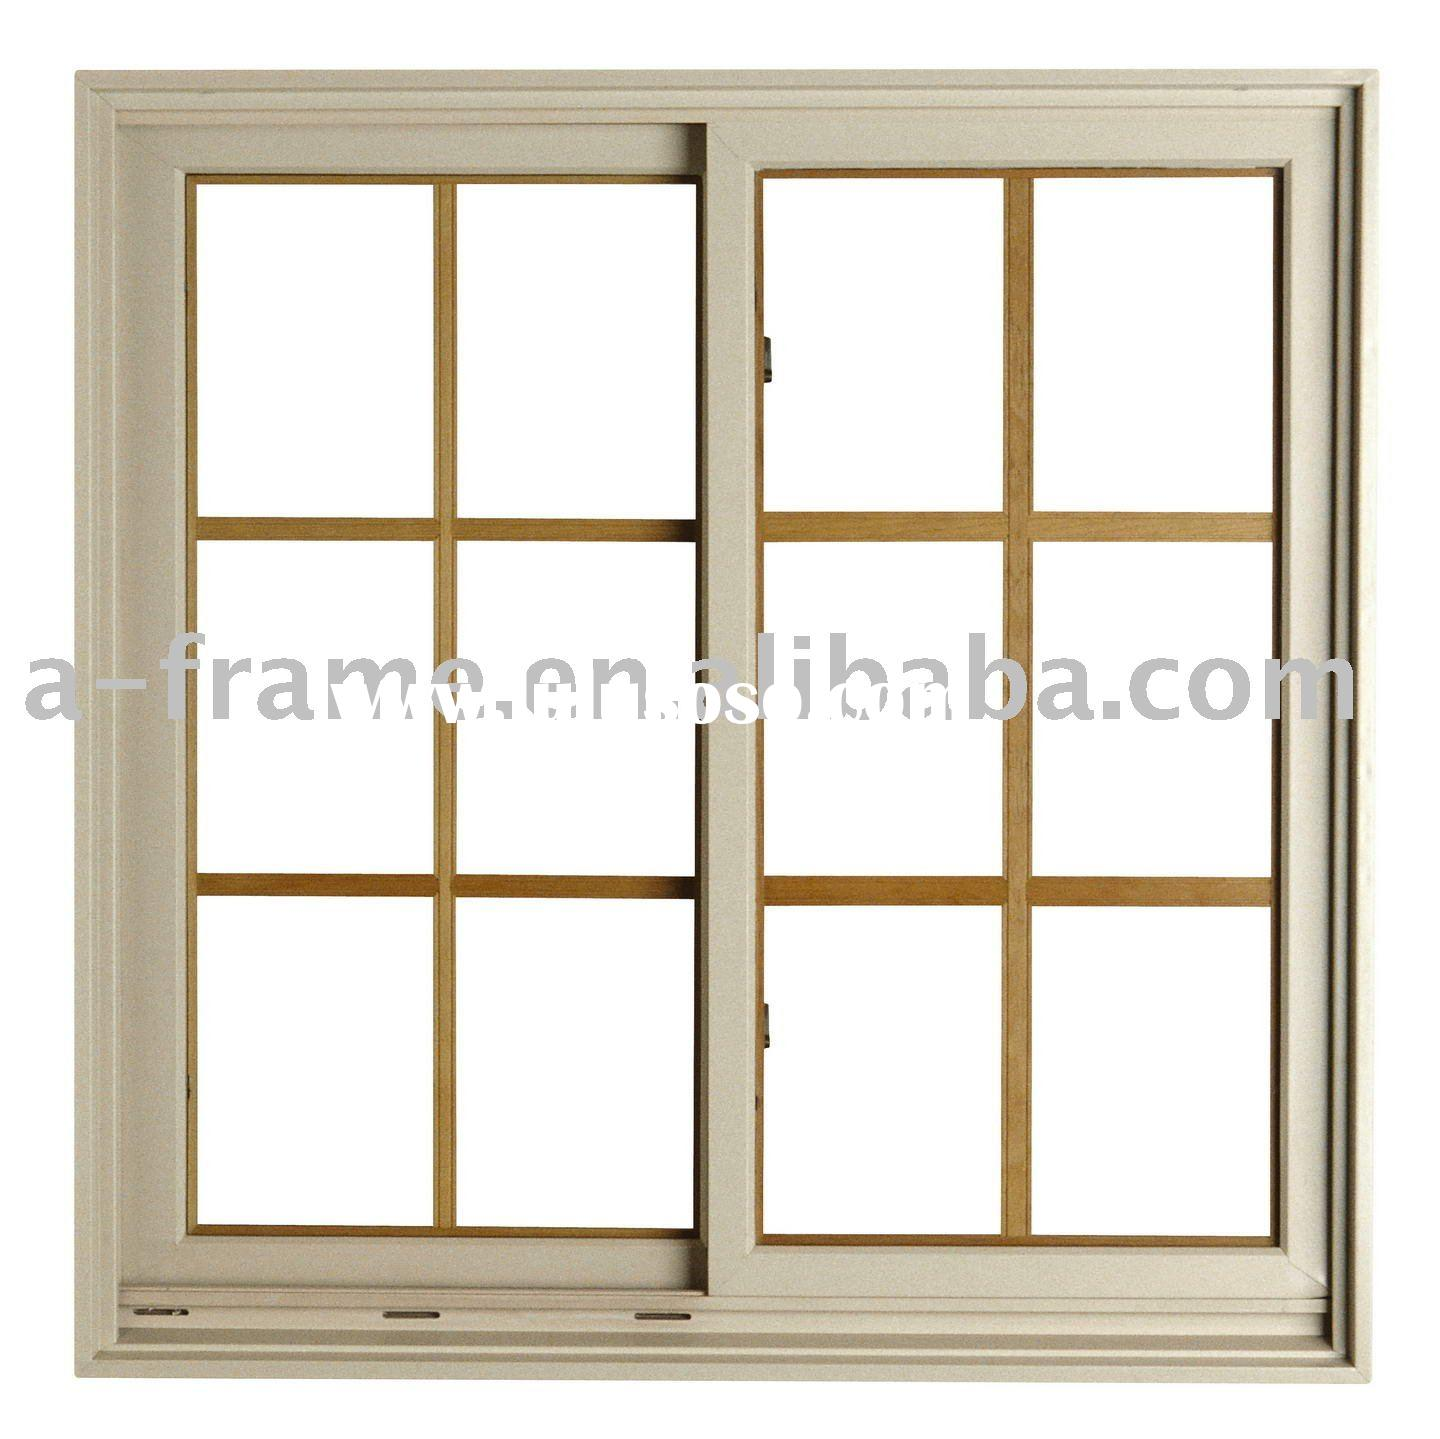 Sample aluminium doors and window manufacturer company p for Aluminium window frame manufacturers